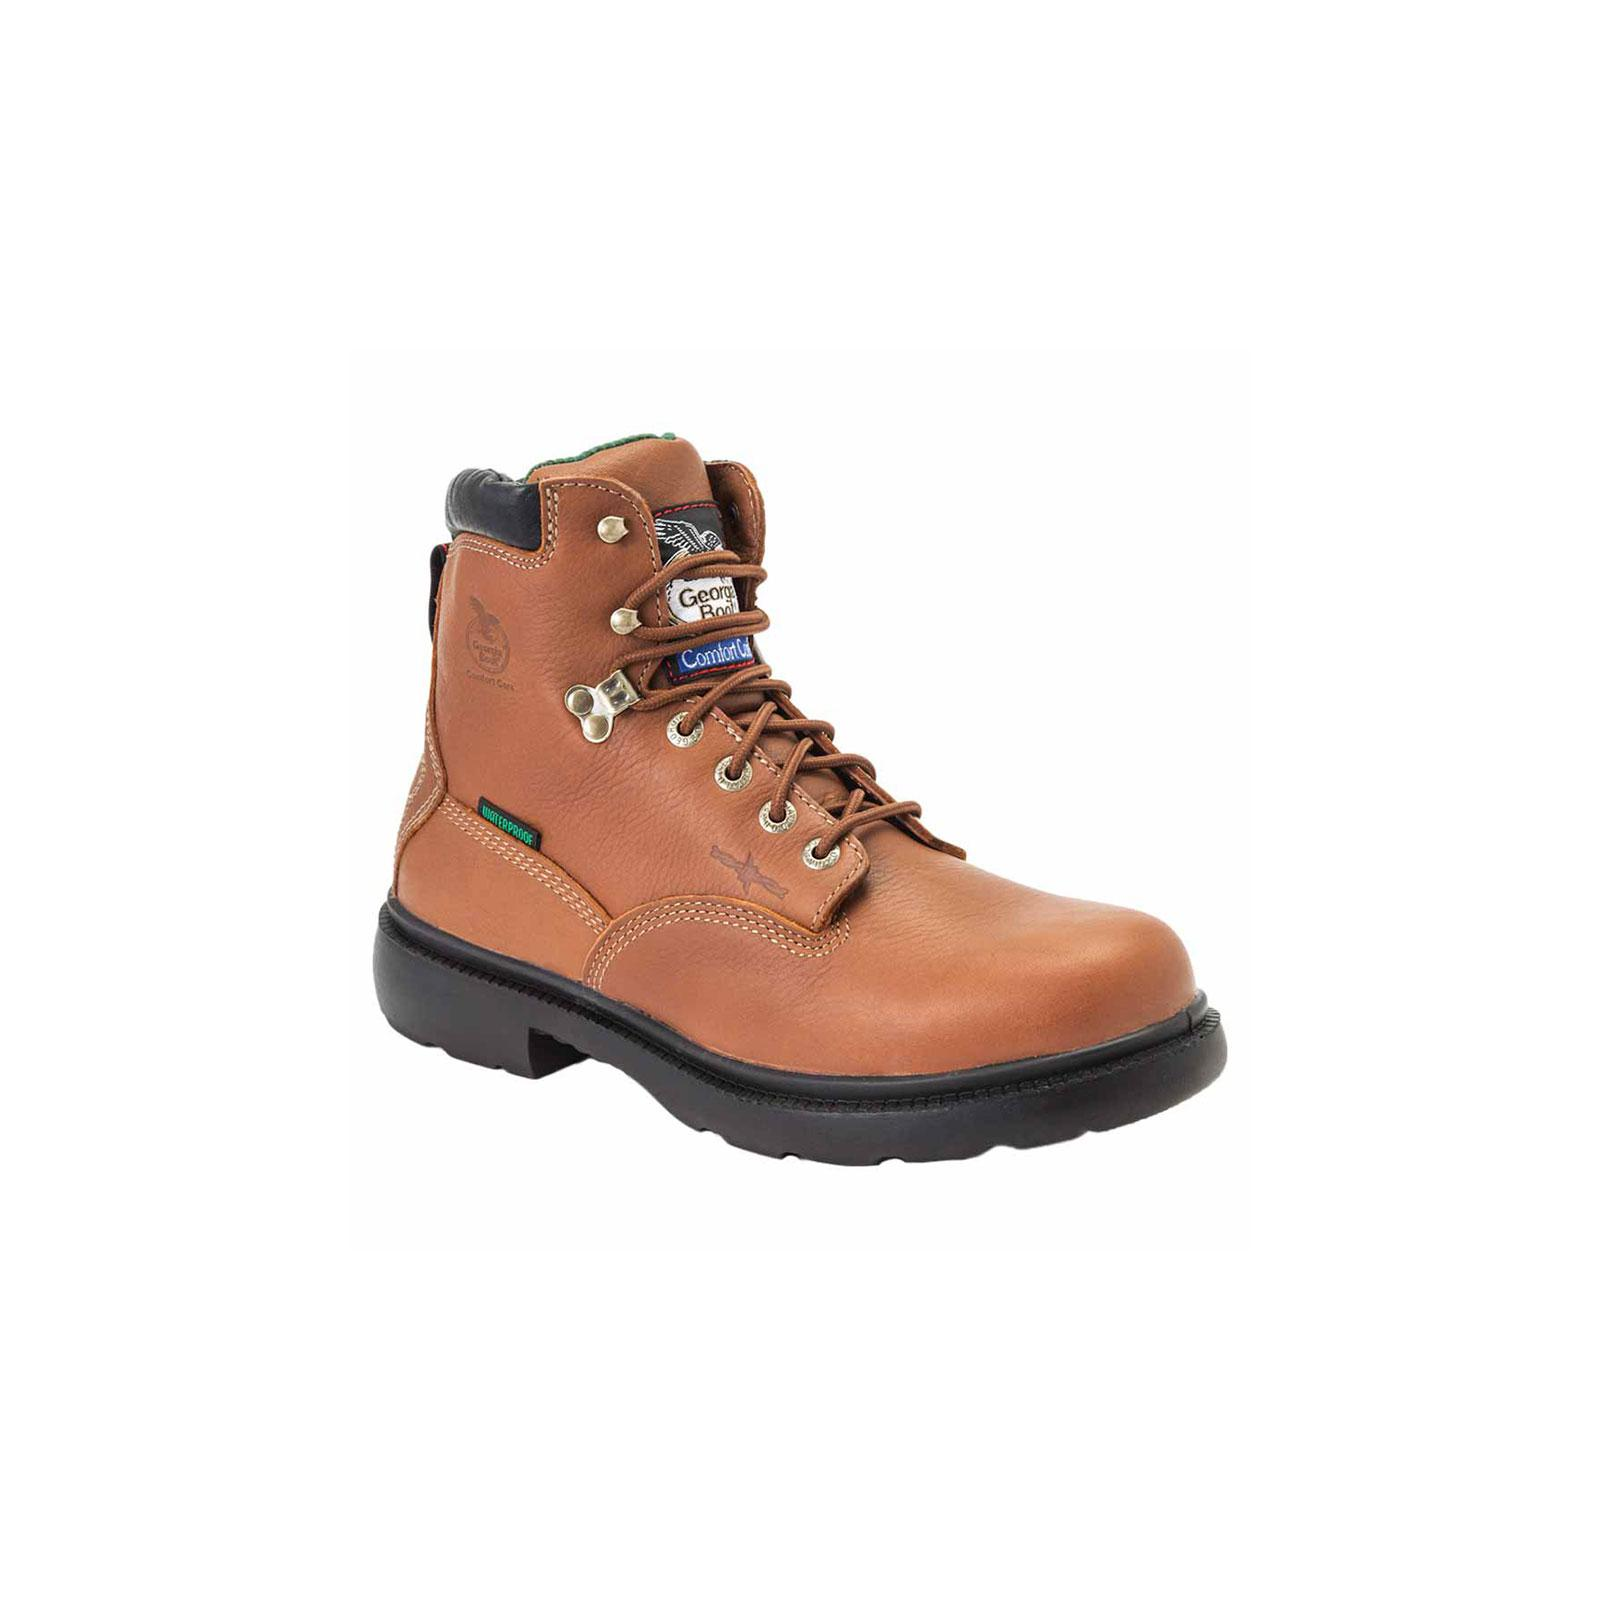 Georgia Men's Farm and Ranch Waterproof Lace Up Work Boots Brown G6503